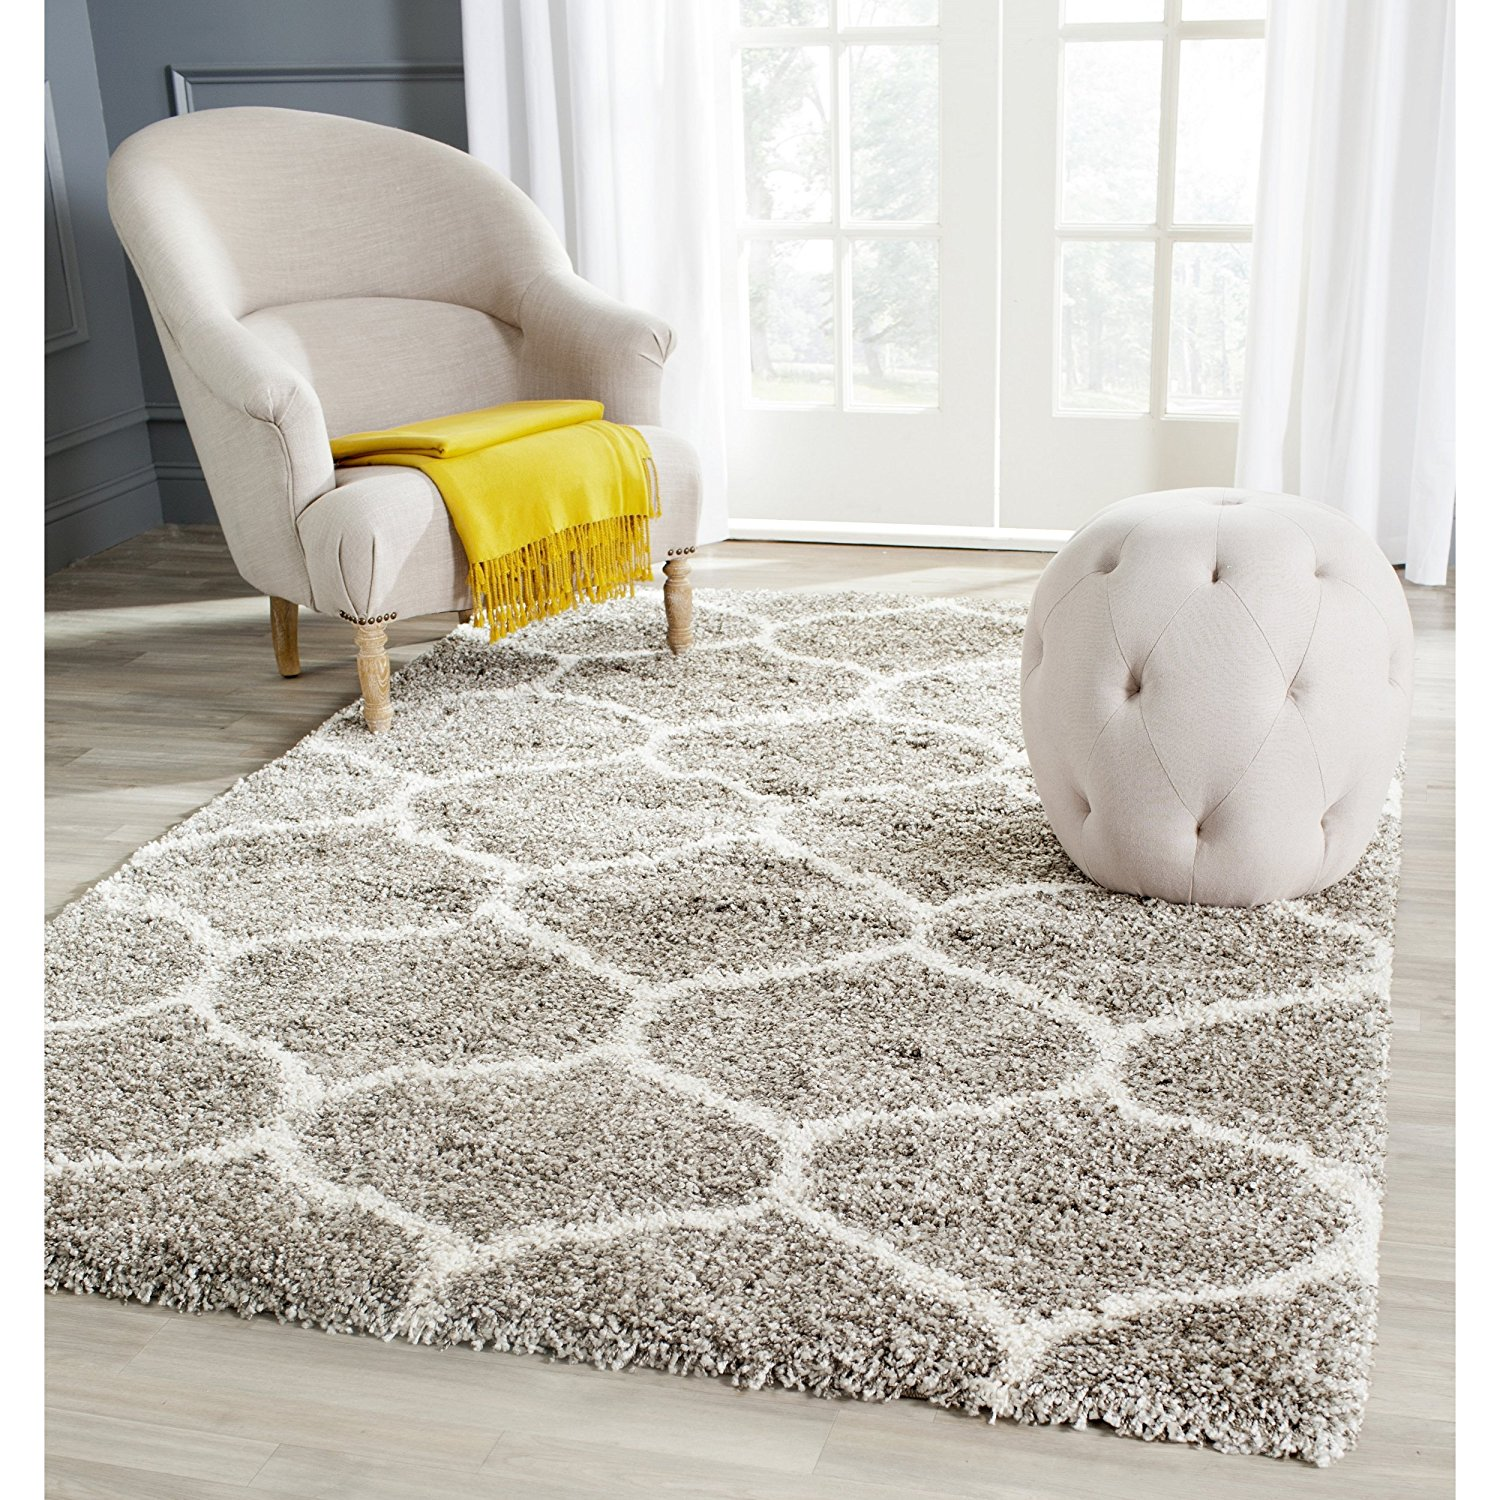 Safavieh Hudson Shag Collection SGH280B Grey and Ivory Area Rug, 4 feet by 6 feet (4' x 6')